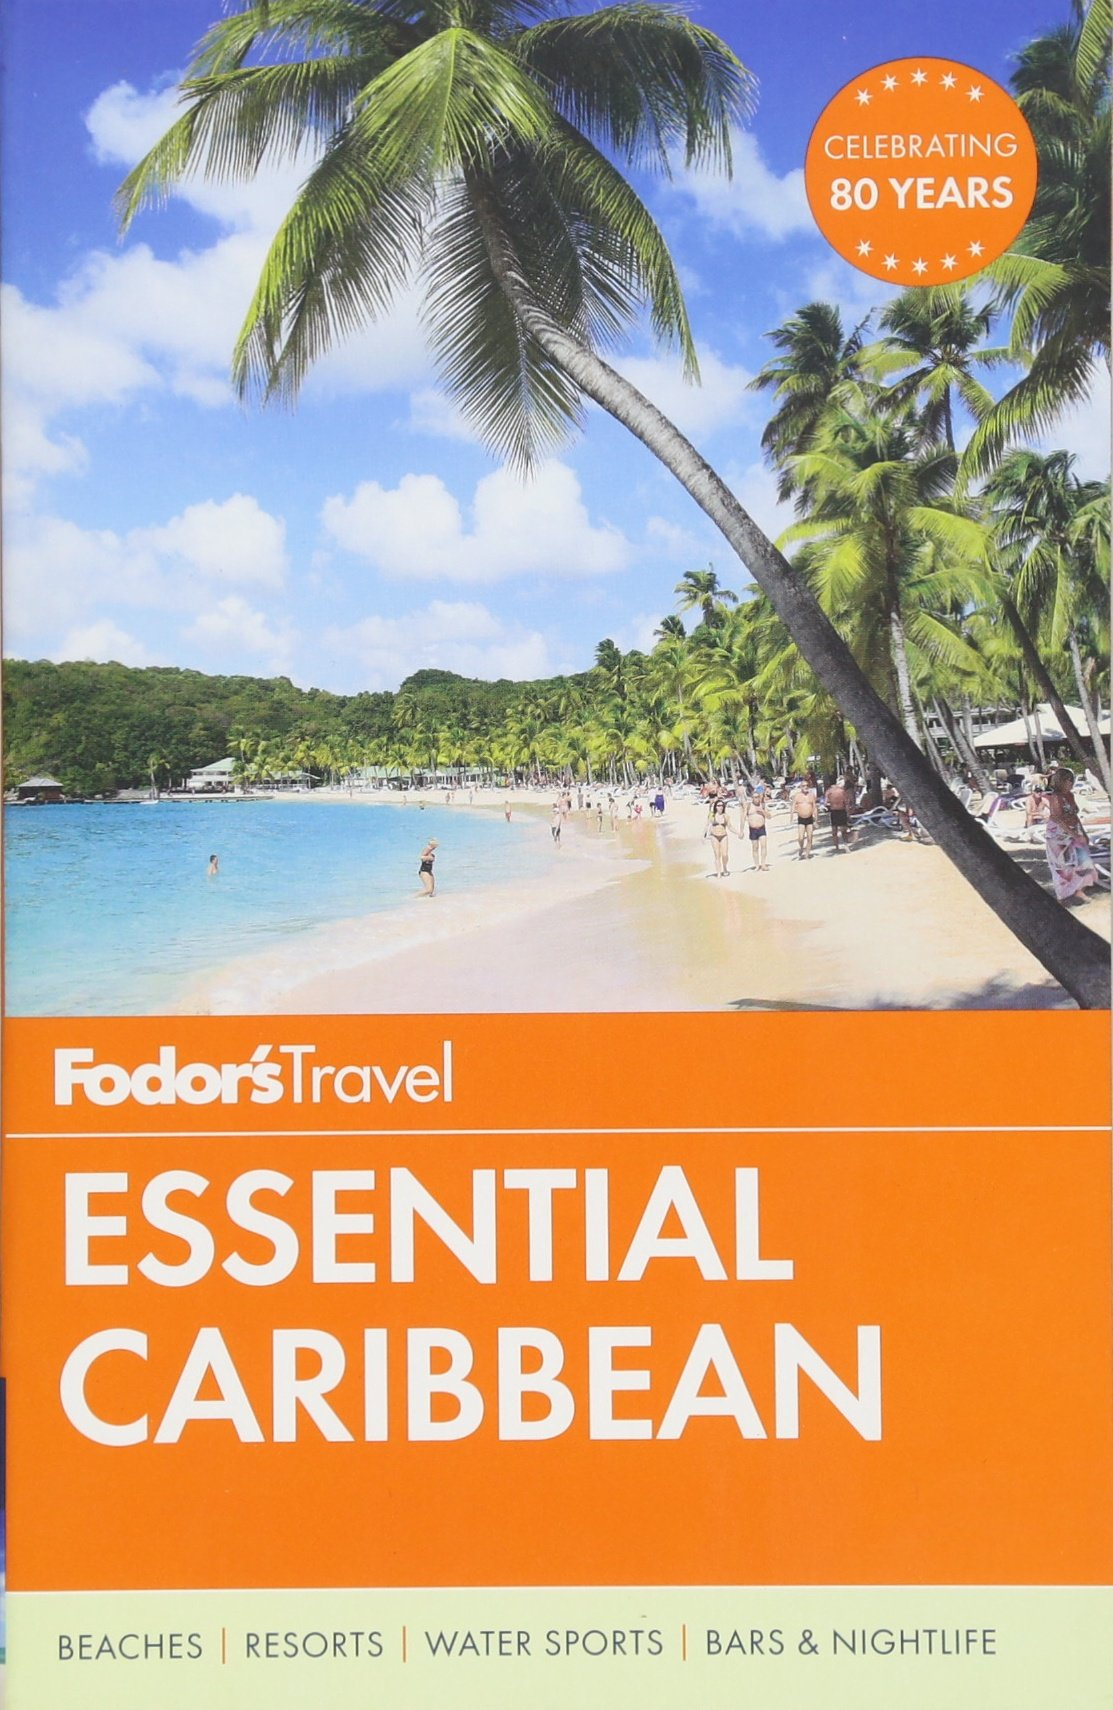 St Barthelemy - Guidebook Chapter. Chapter from Caribbean Islands Travel Guide Book